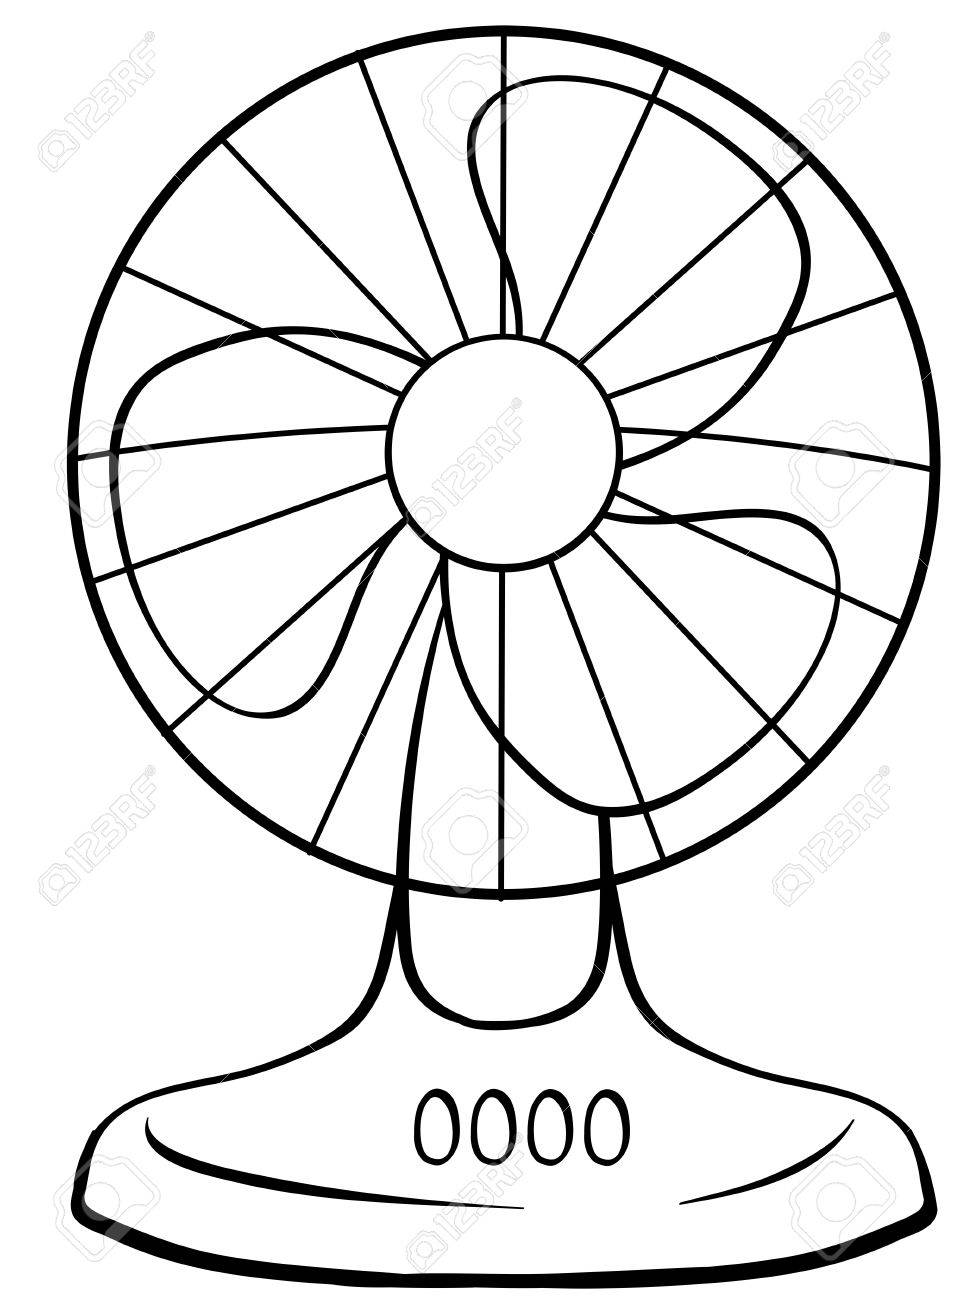 Electric Fan Coloring Pages